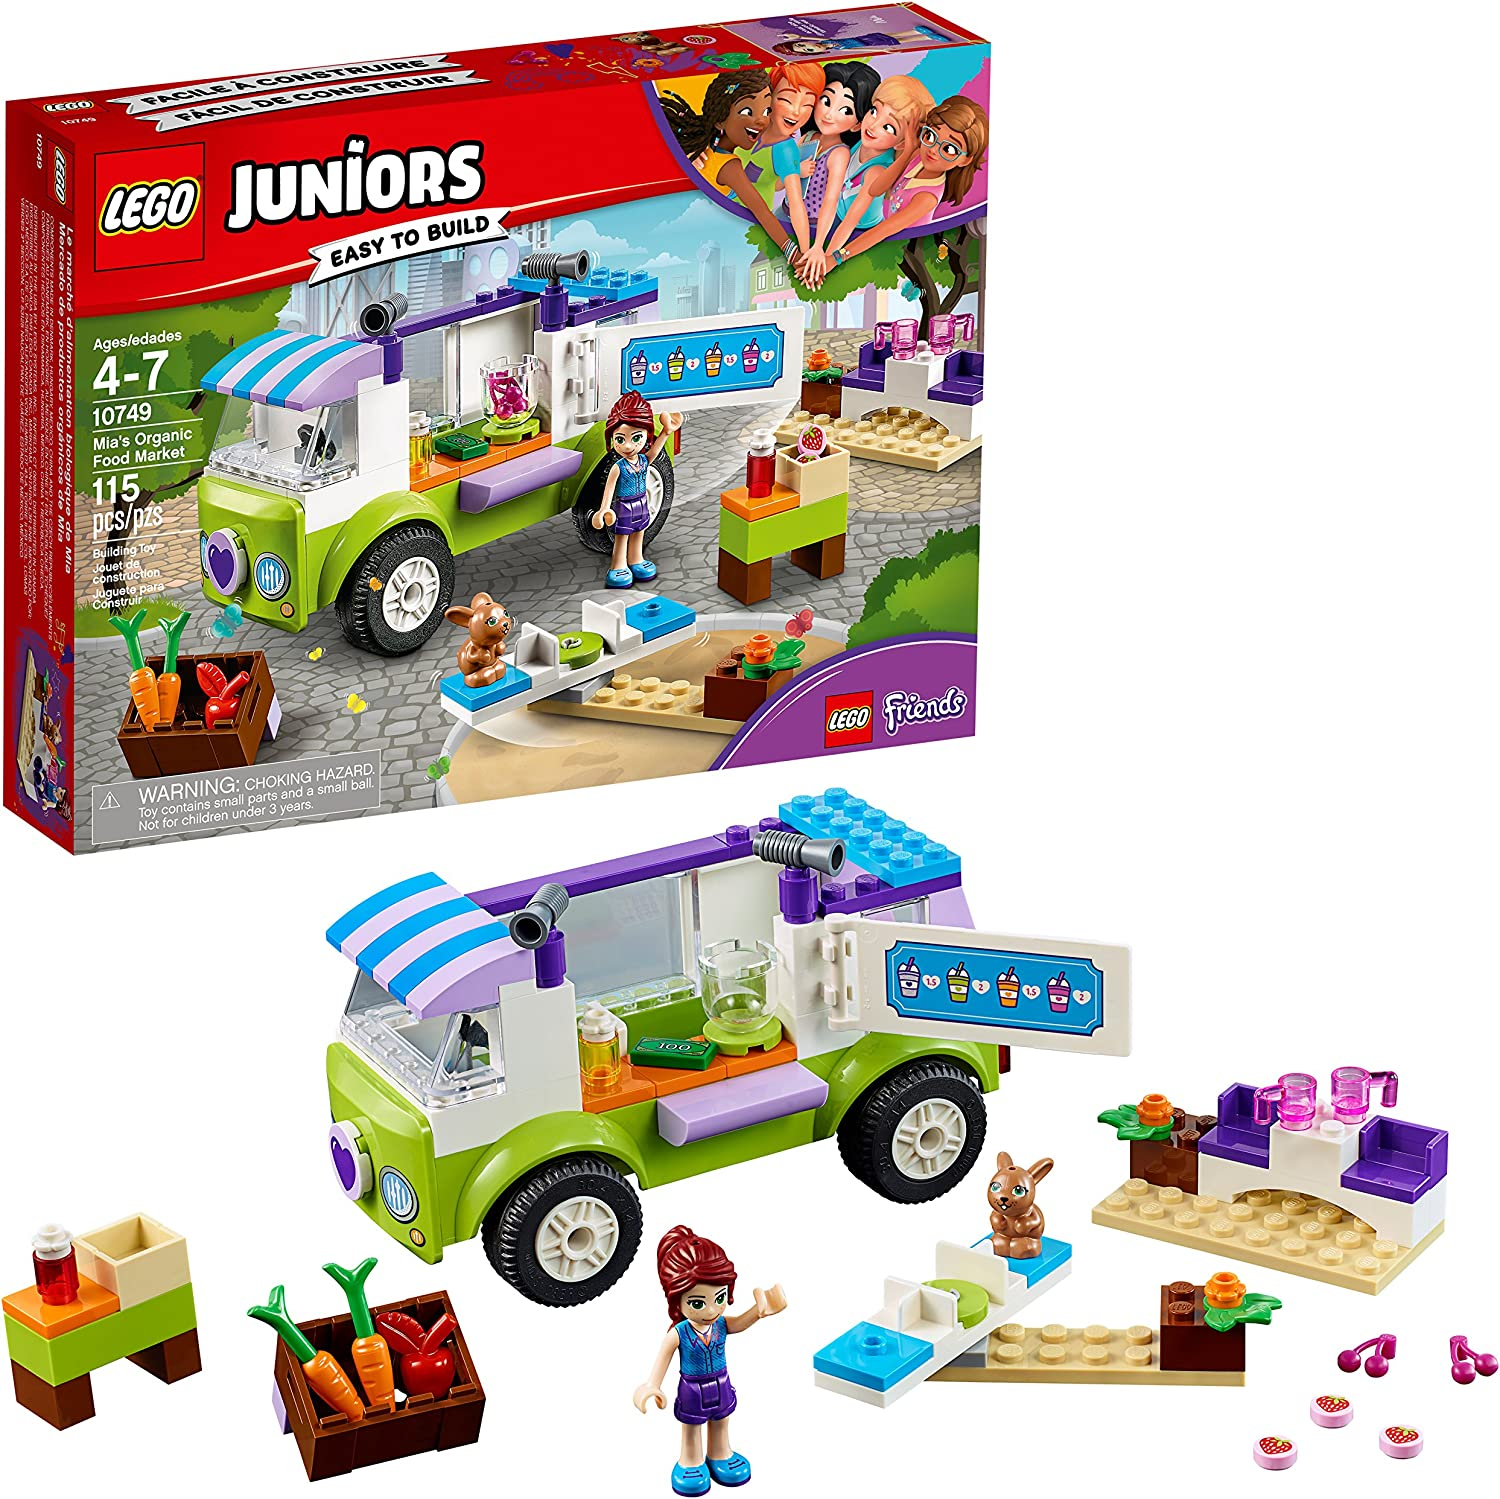 LEGO Juniors/4+ Mia's Organic Food Market 10749 Building Kit (115 Piece)